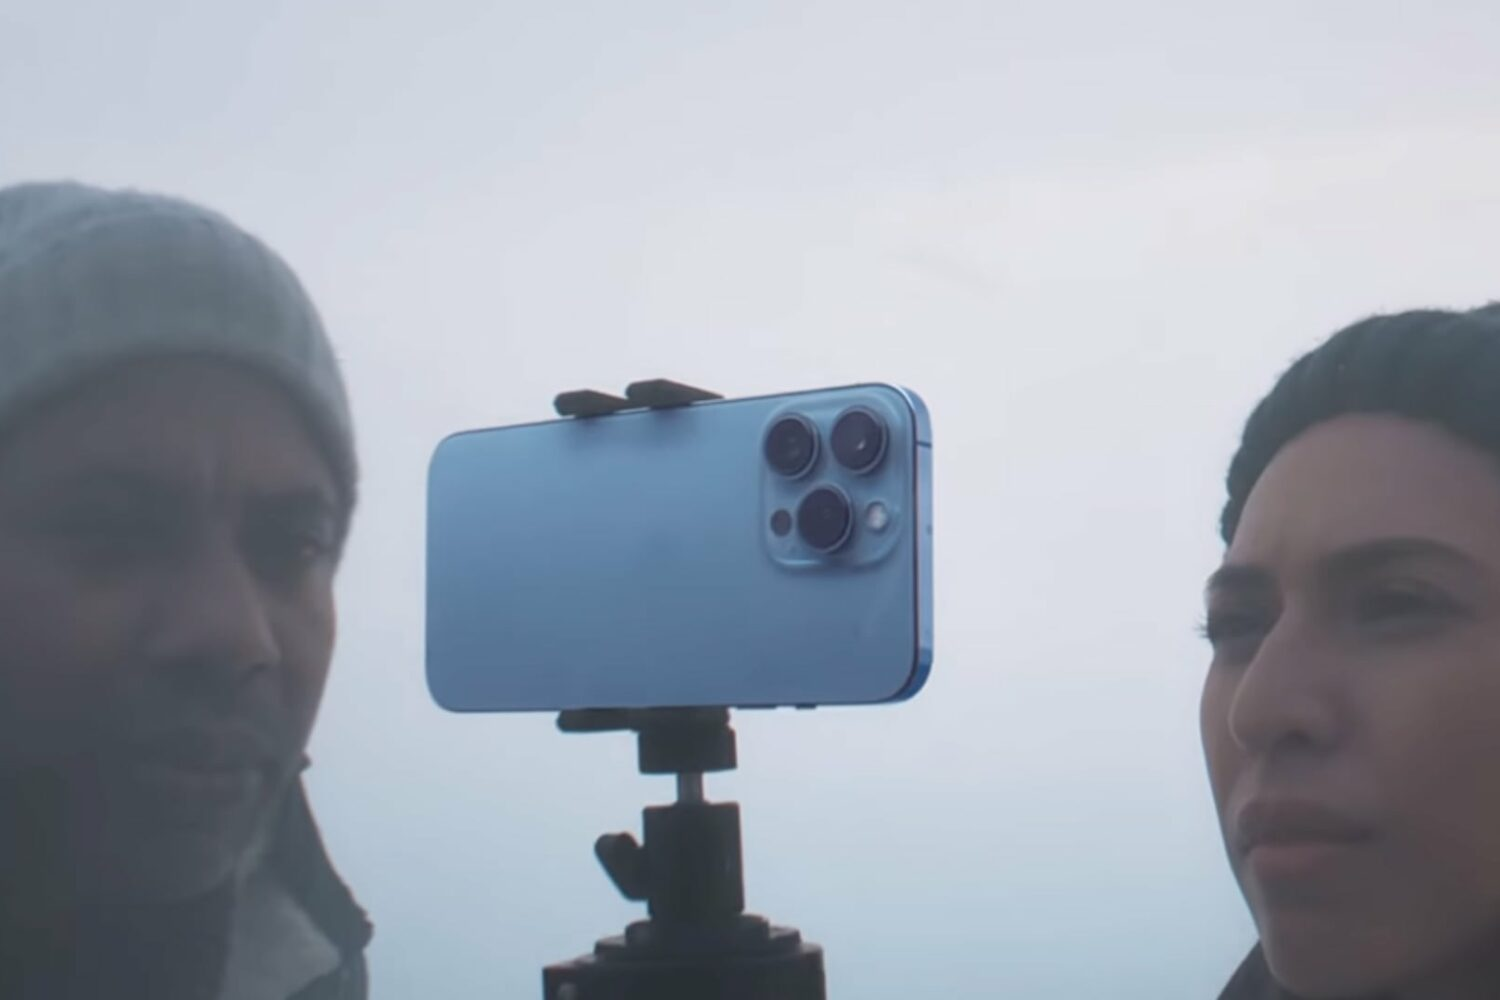 A still image taken from Apple's iPhone 13 Pro introduction video on YouTube, showing a closeup of two crew members shooting a winter scene using a tripod for the handset